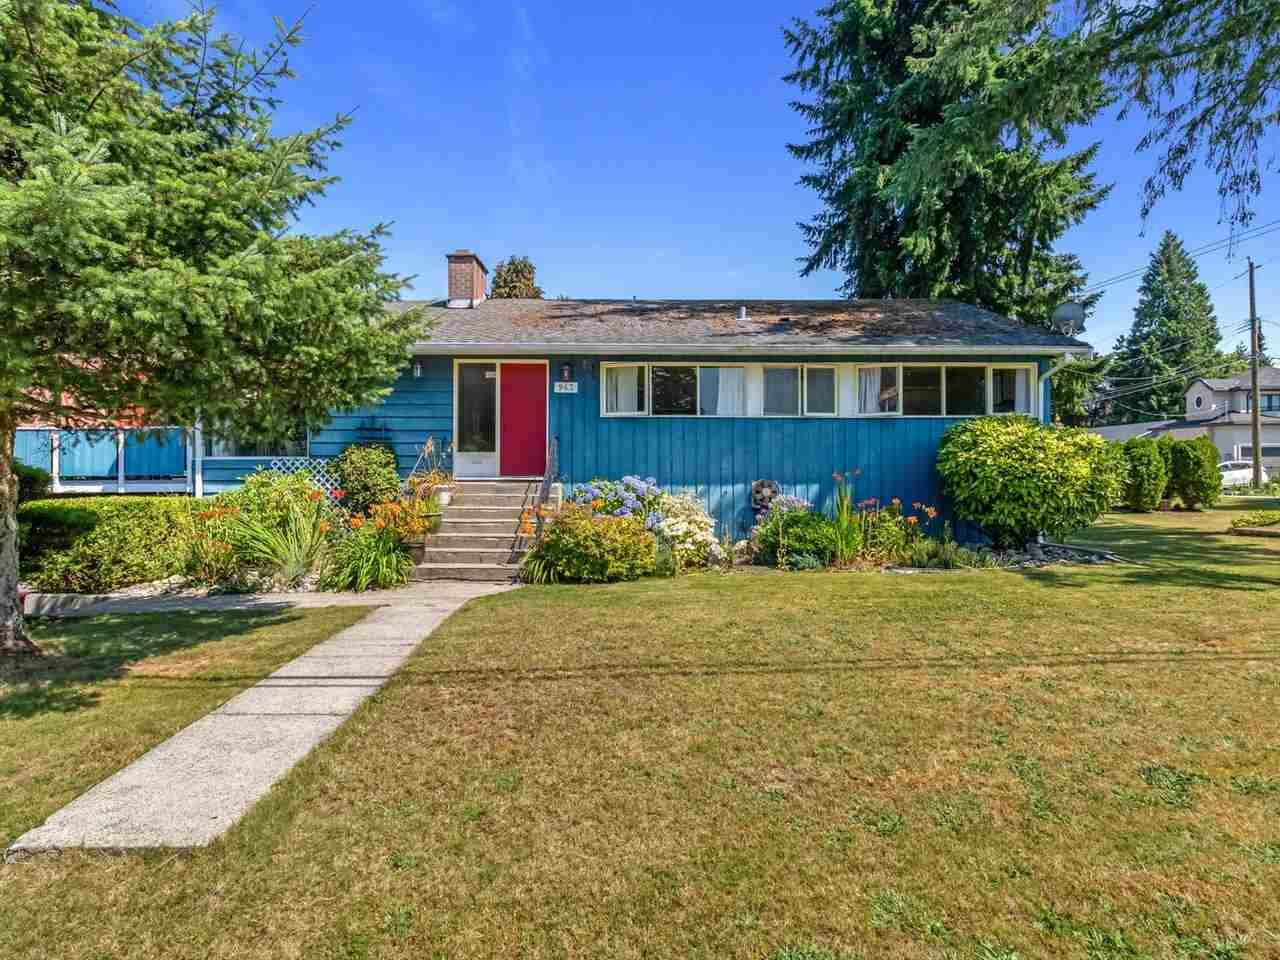 Main Photo: 943 GATENSBURY Street in Coquitlam: Harbour Chines House for sale : MLS®# R2499202